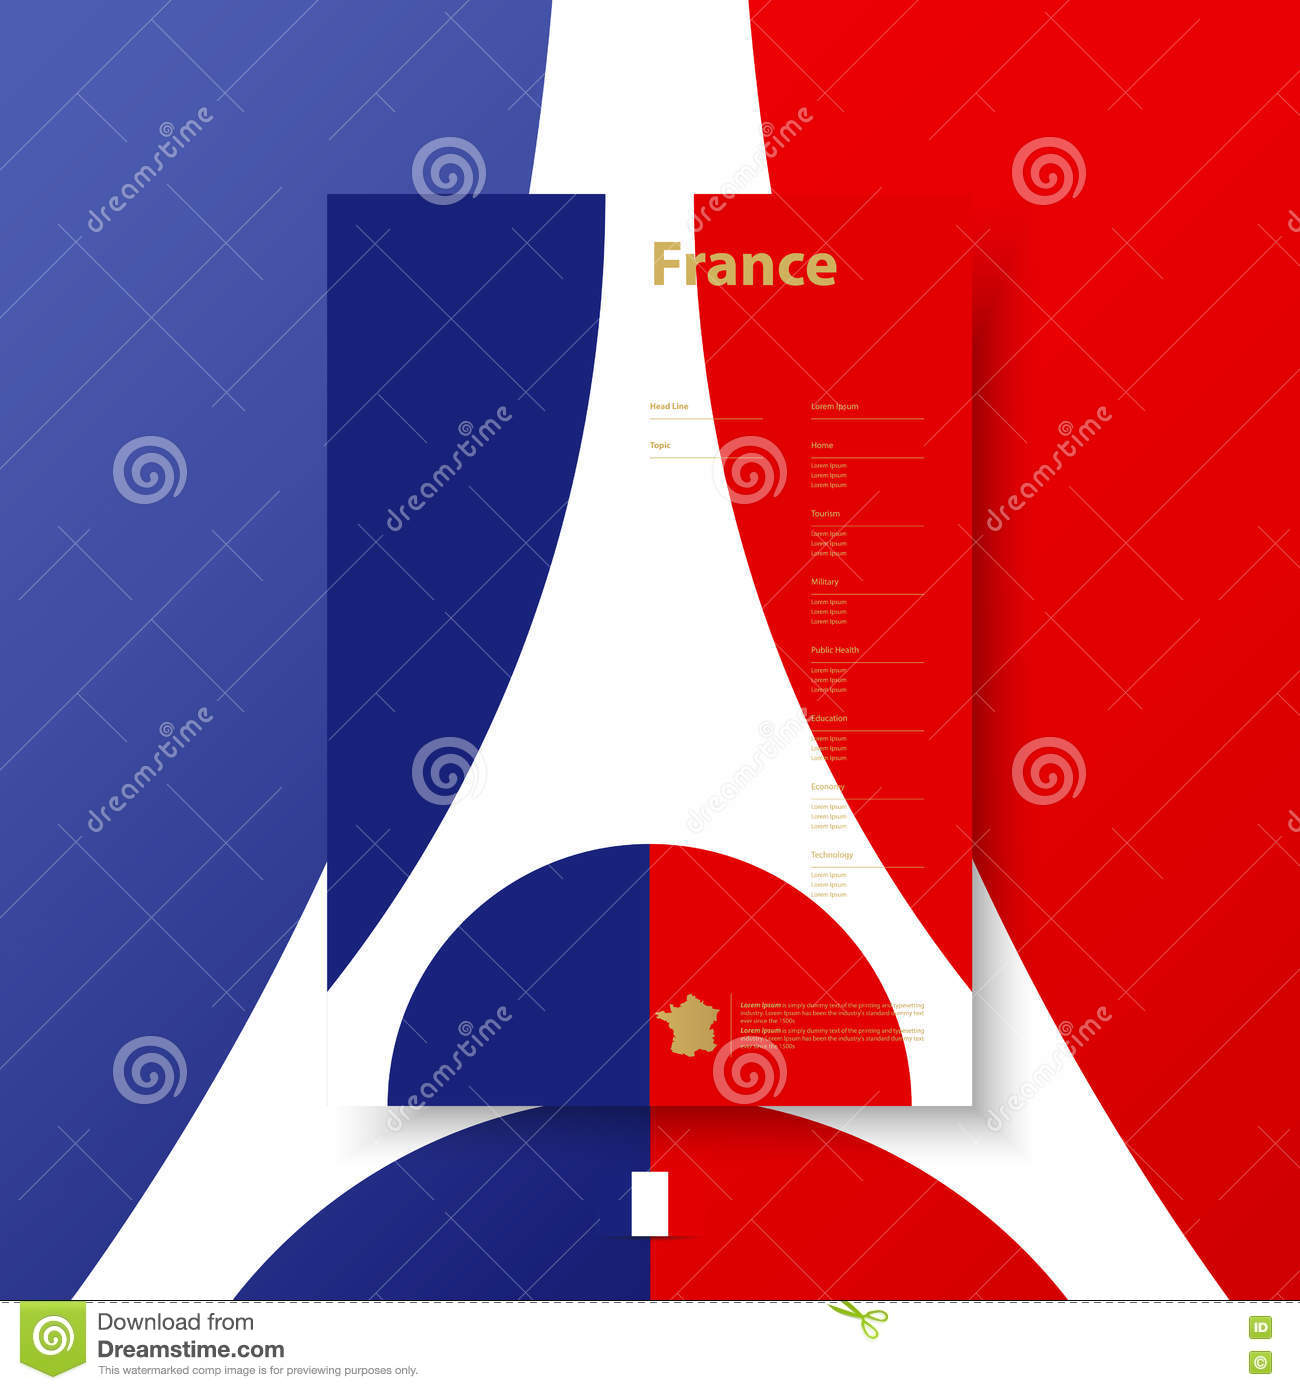 Business Corporate Templates For Flyers Brochure Report France